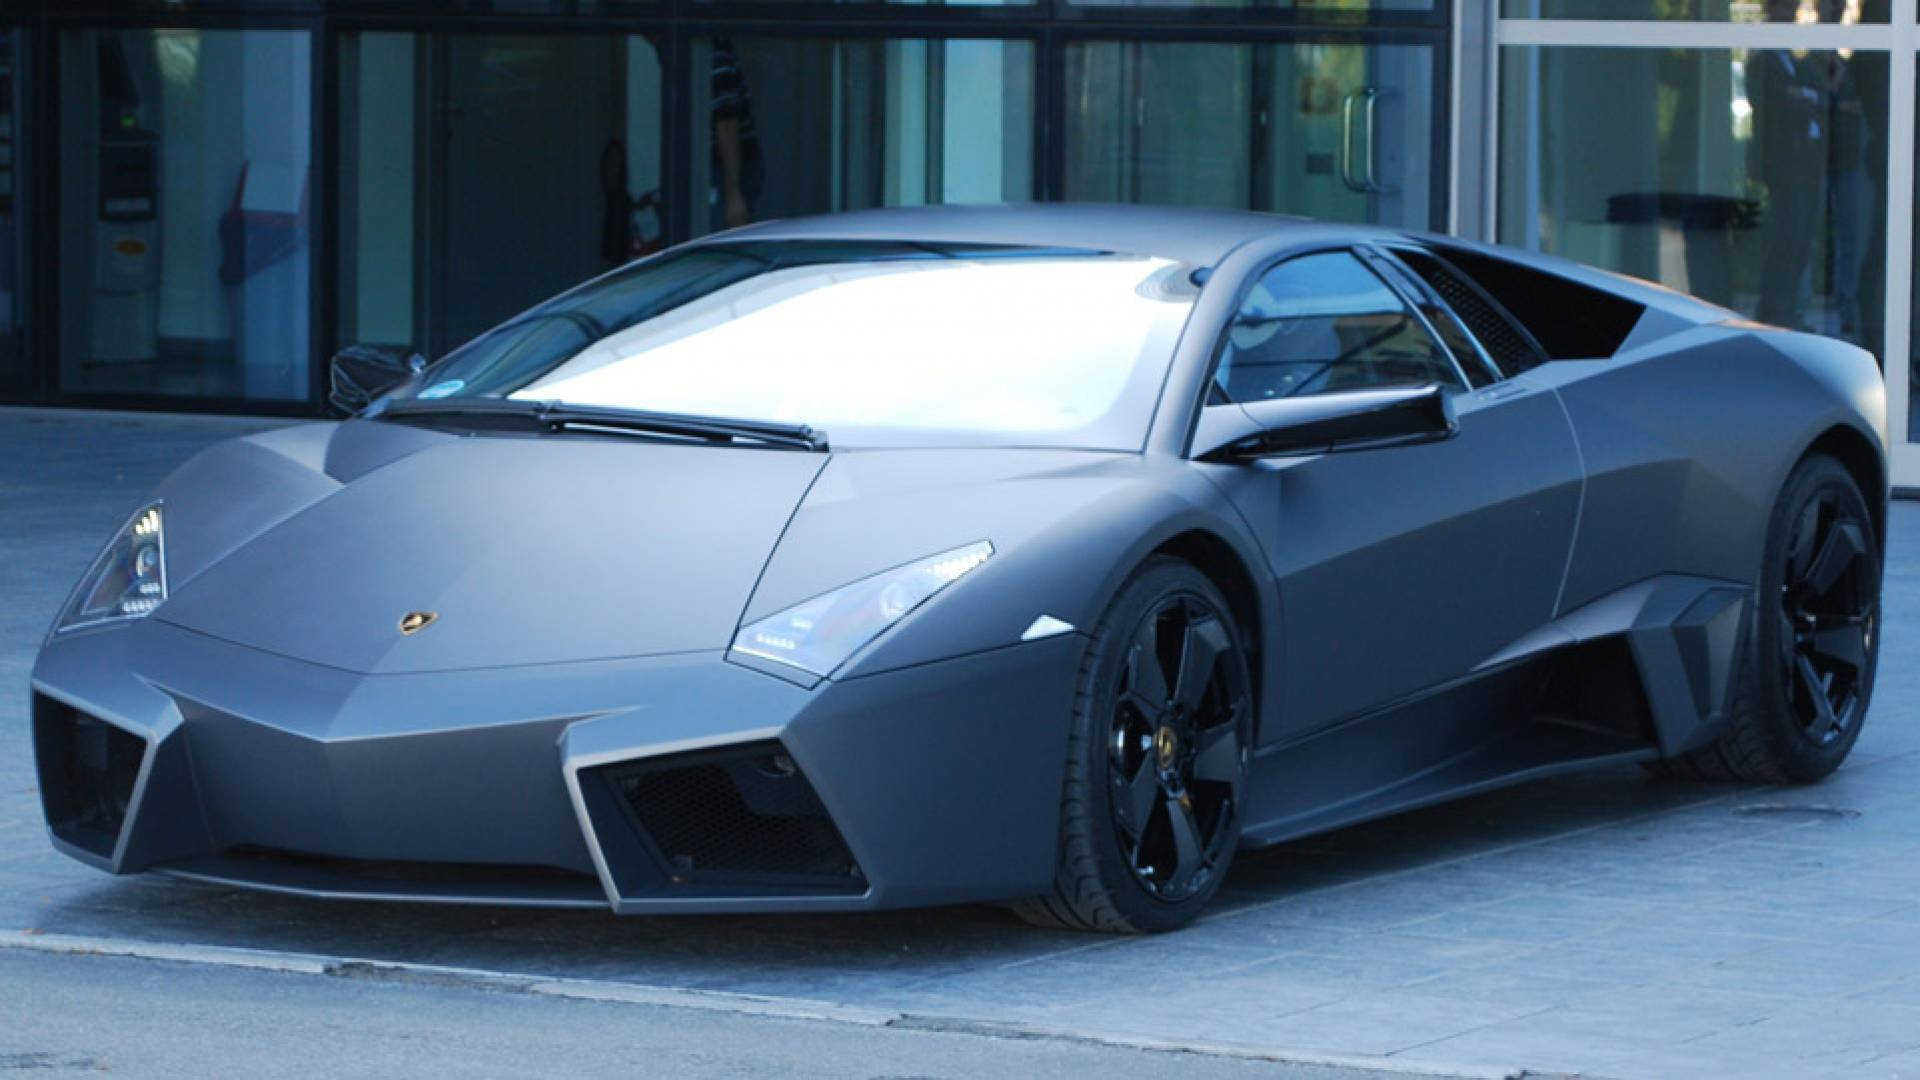 lamborghini reventon precios noticias prueba ficha t cnica y fotos diariomotor. Black Bedroom Furniture Sets. Home Design Ideas